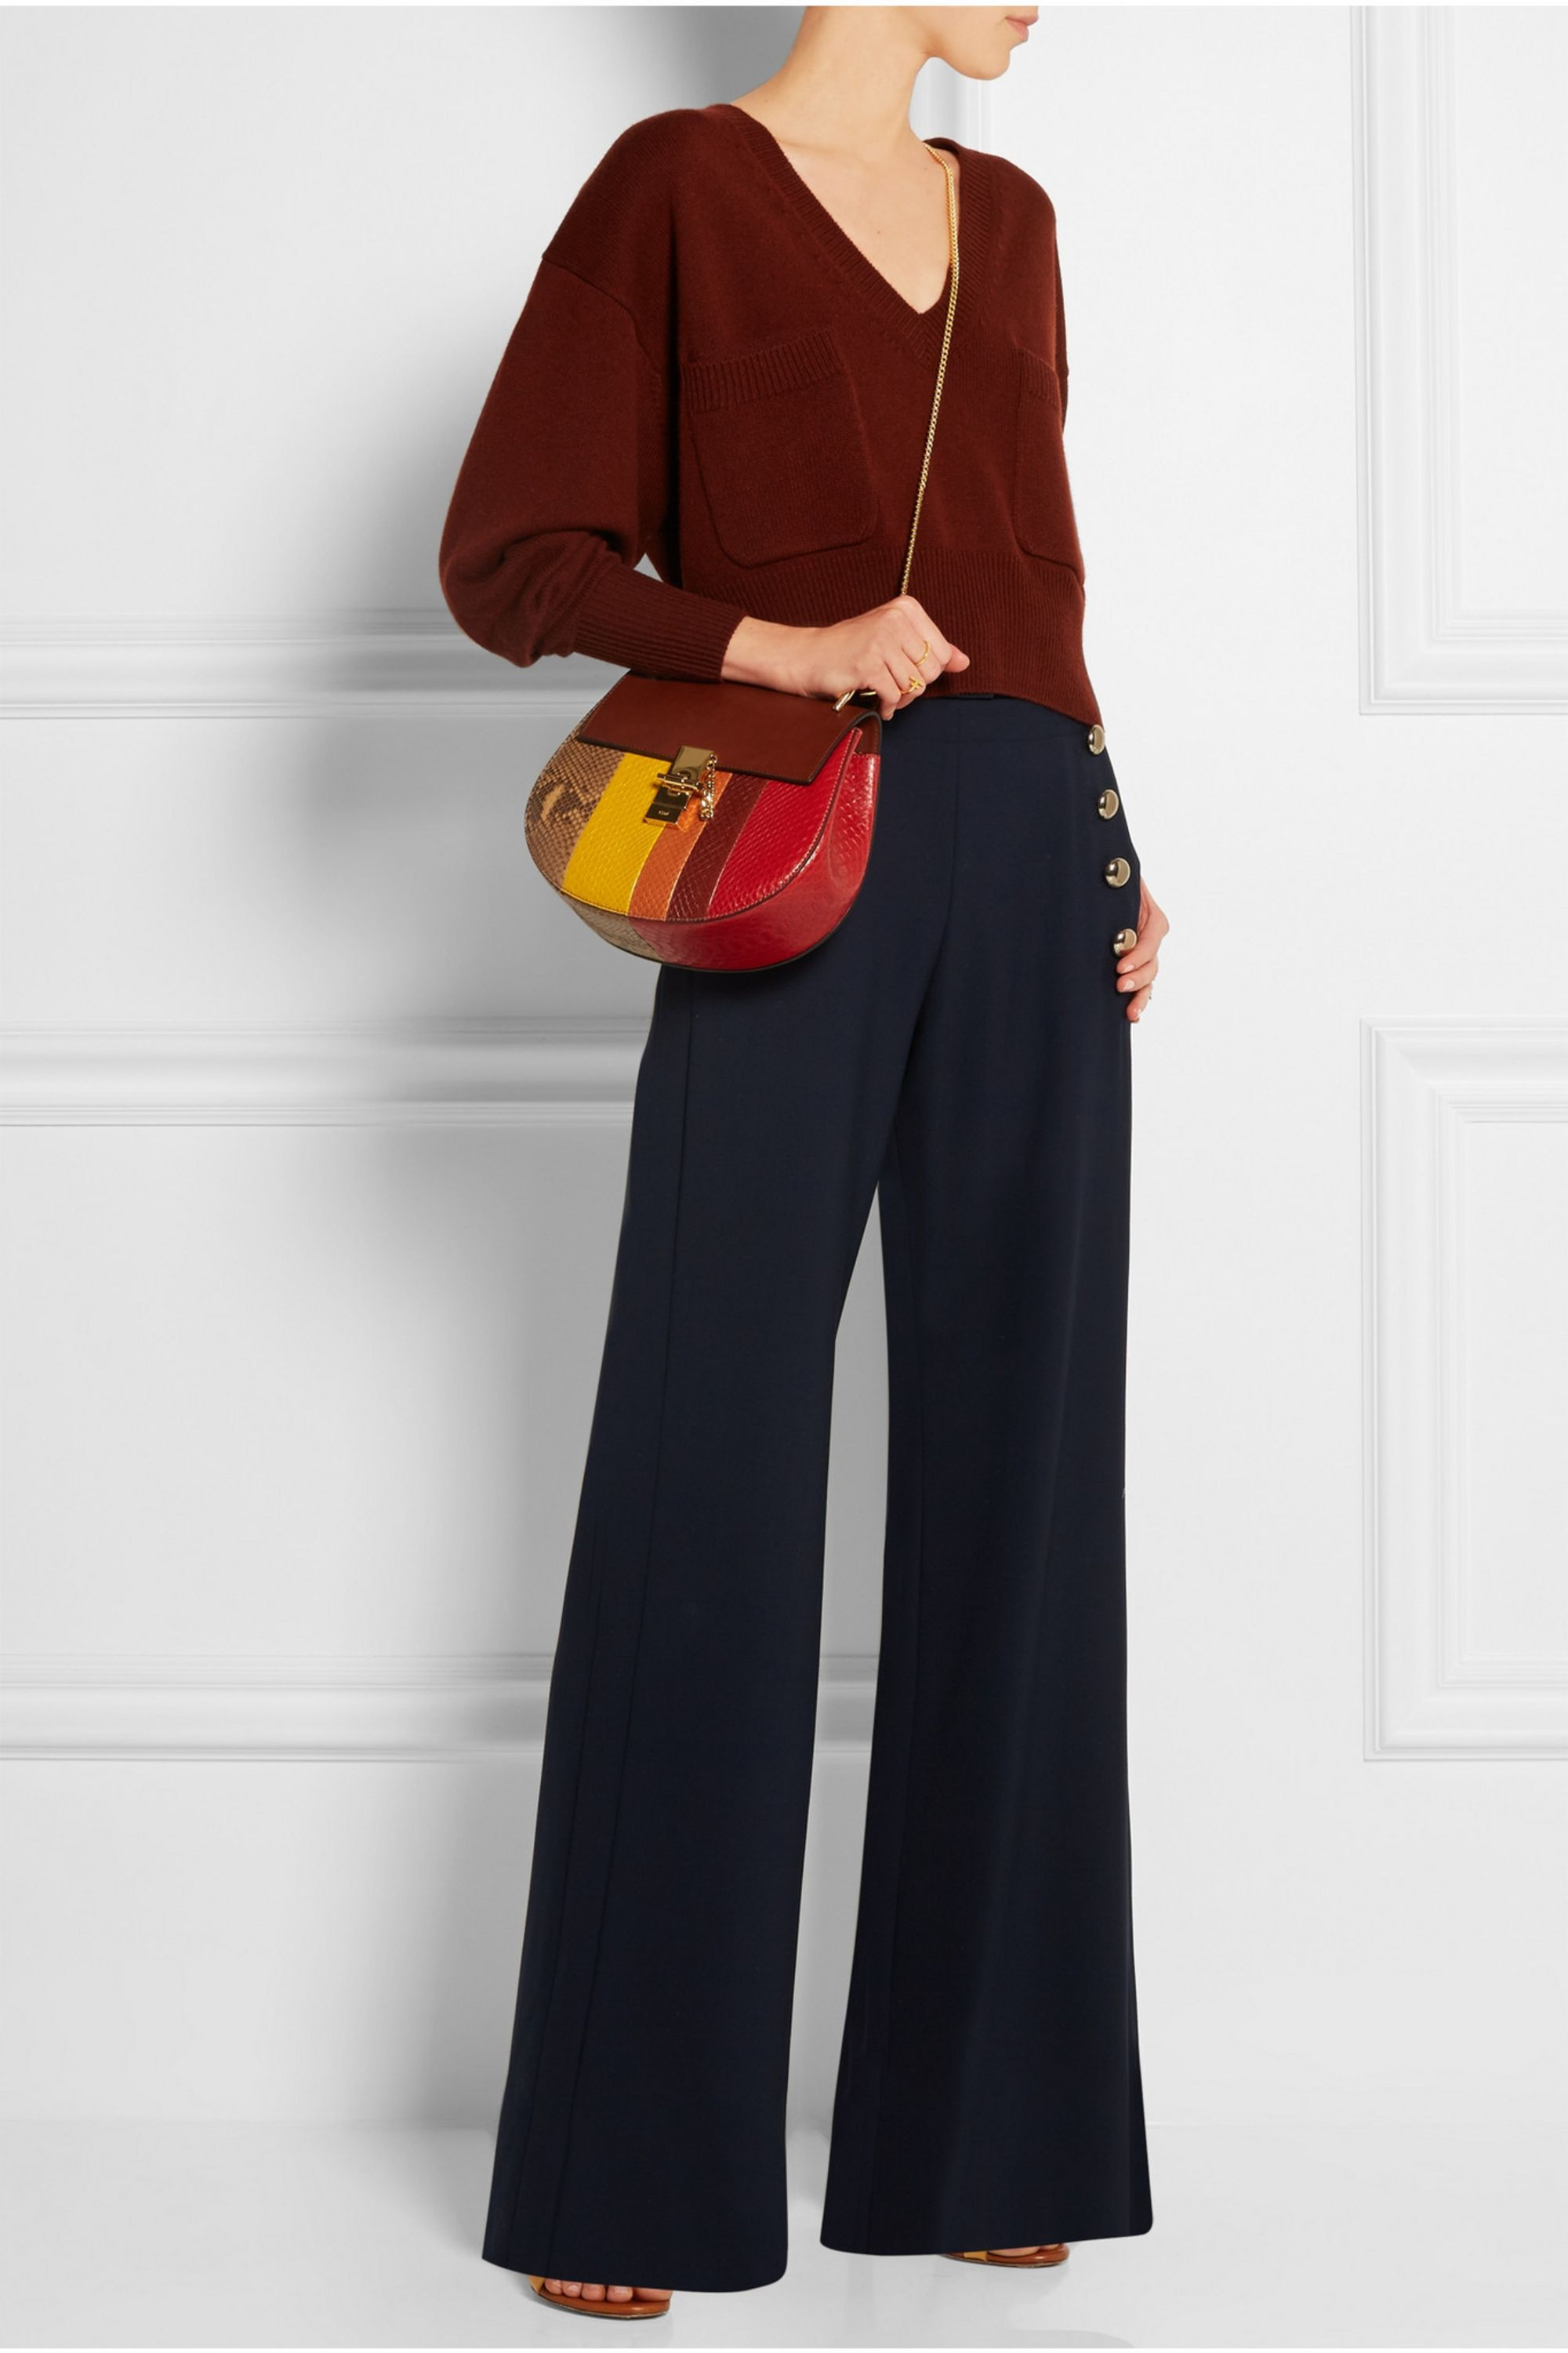 Chloé Drew small python and leather shoulder bag